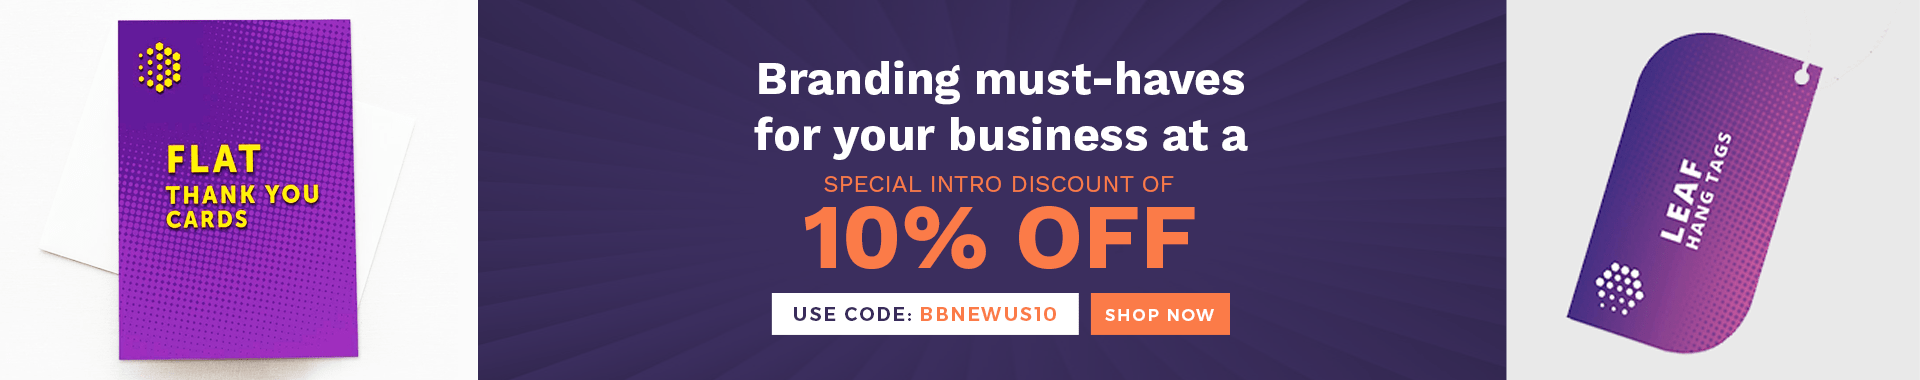 Branding must-haves for your business at a special intro discount of 10%!